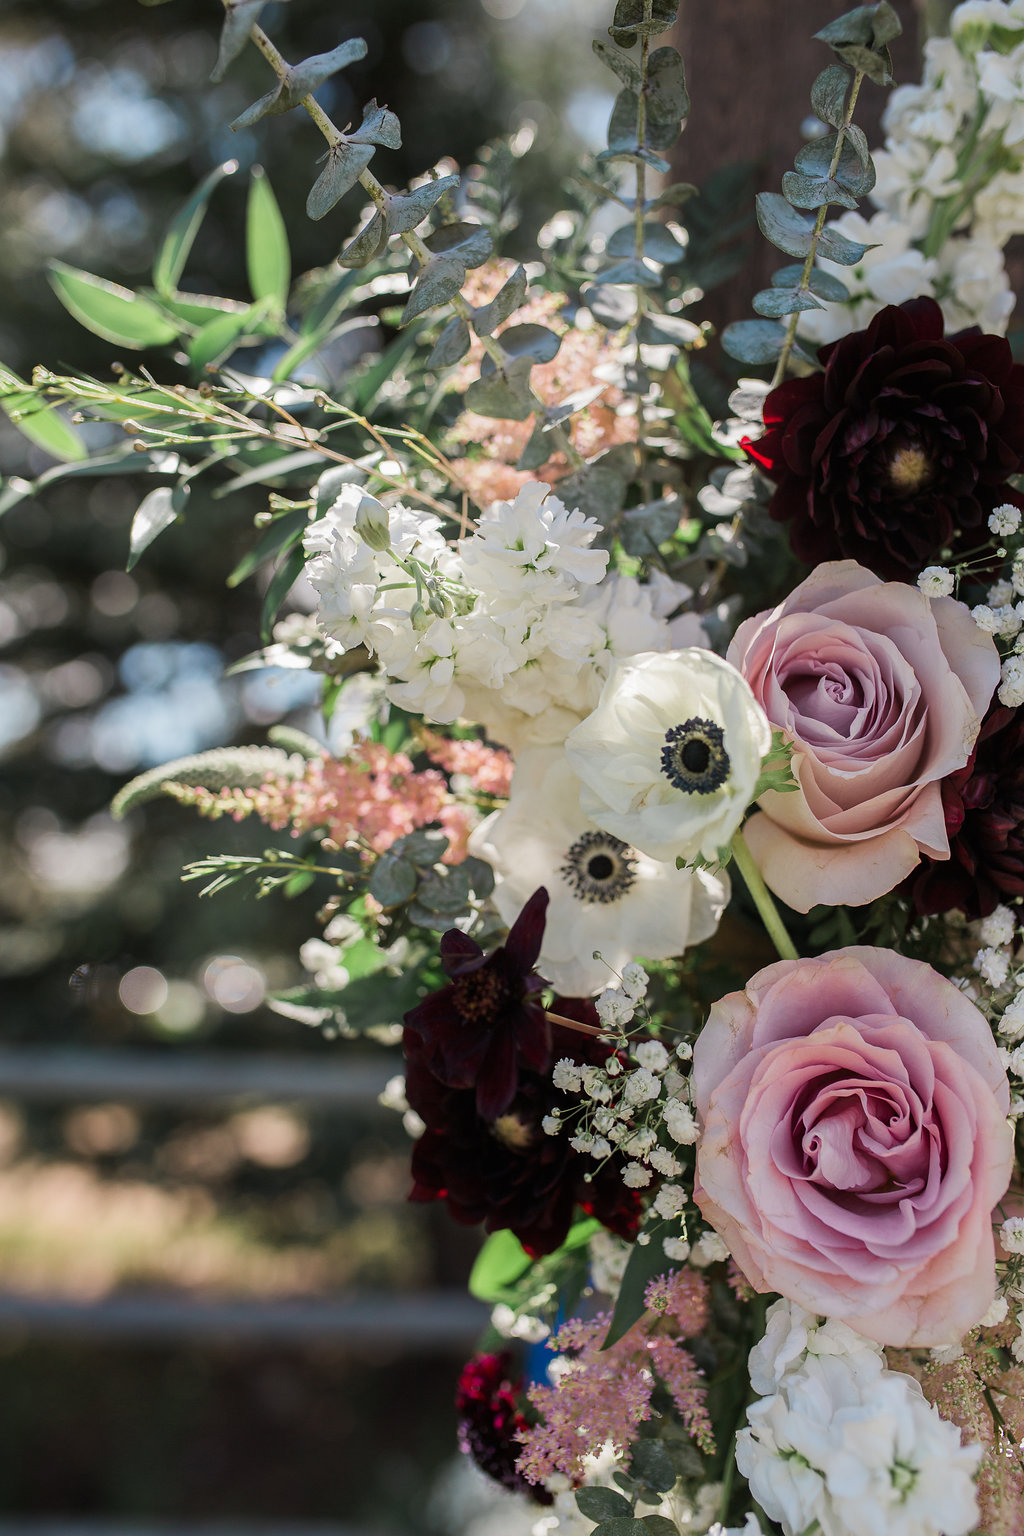 Wedding Flowers - Calgary Wedding Florist - Deanna Rachel Photography.jpg